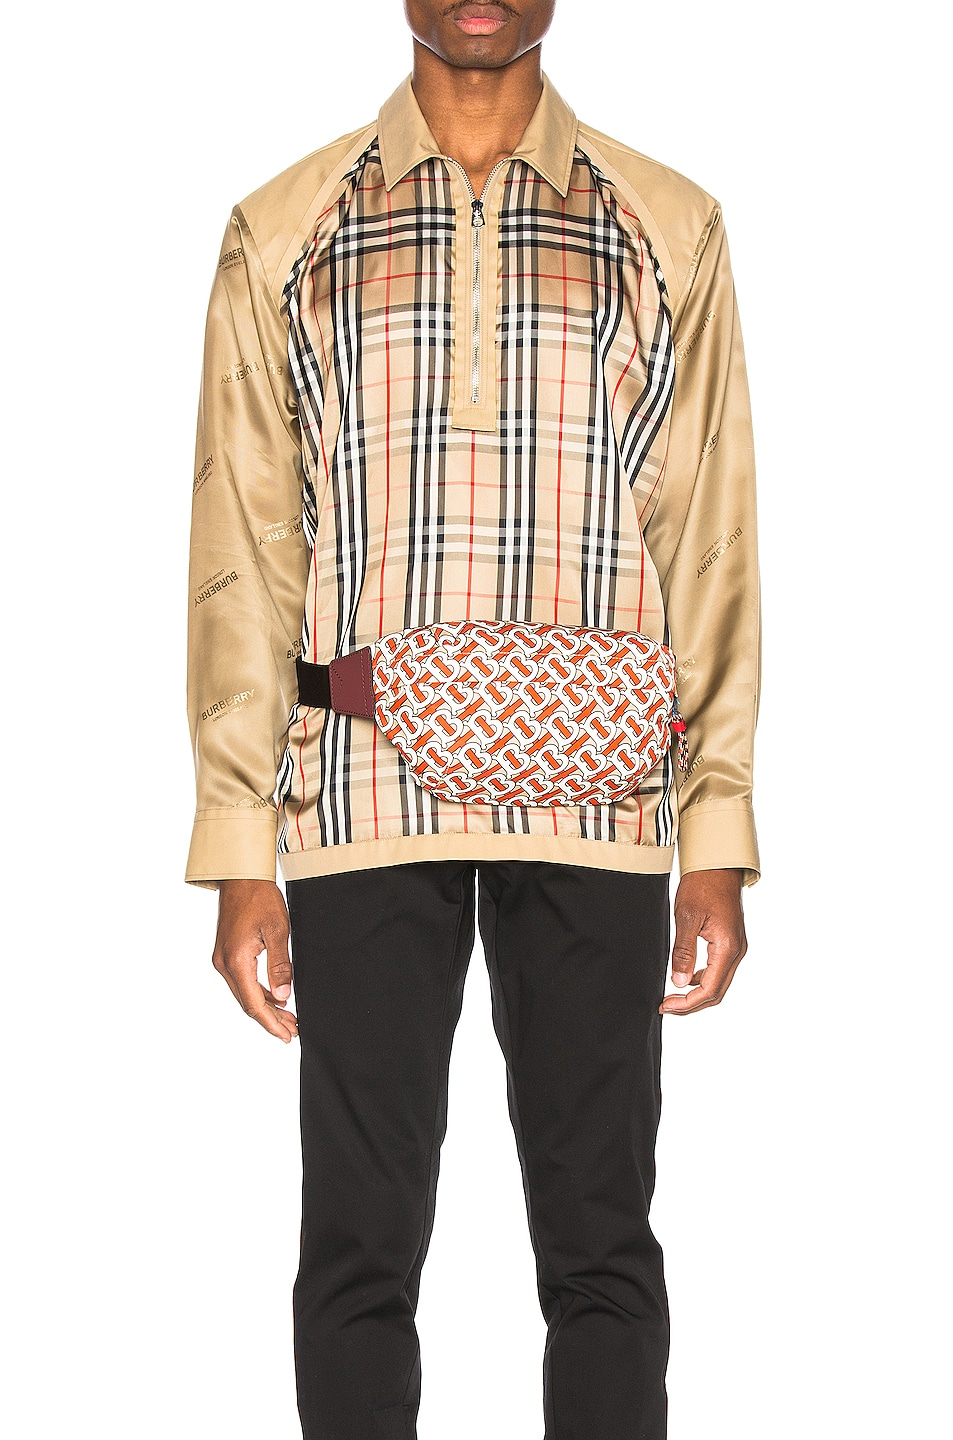 Image 1 of Burberry Runway Check Raglan Shirt in Archive Beige Check